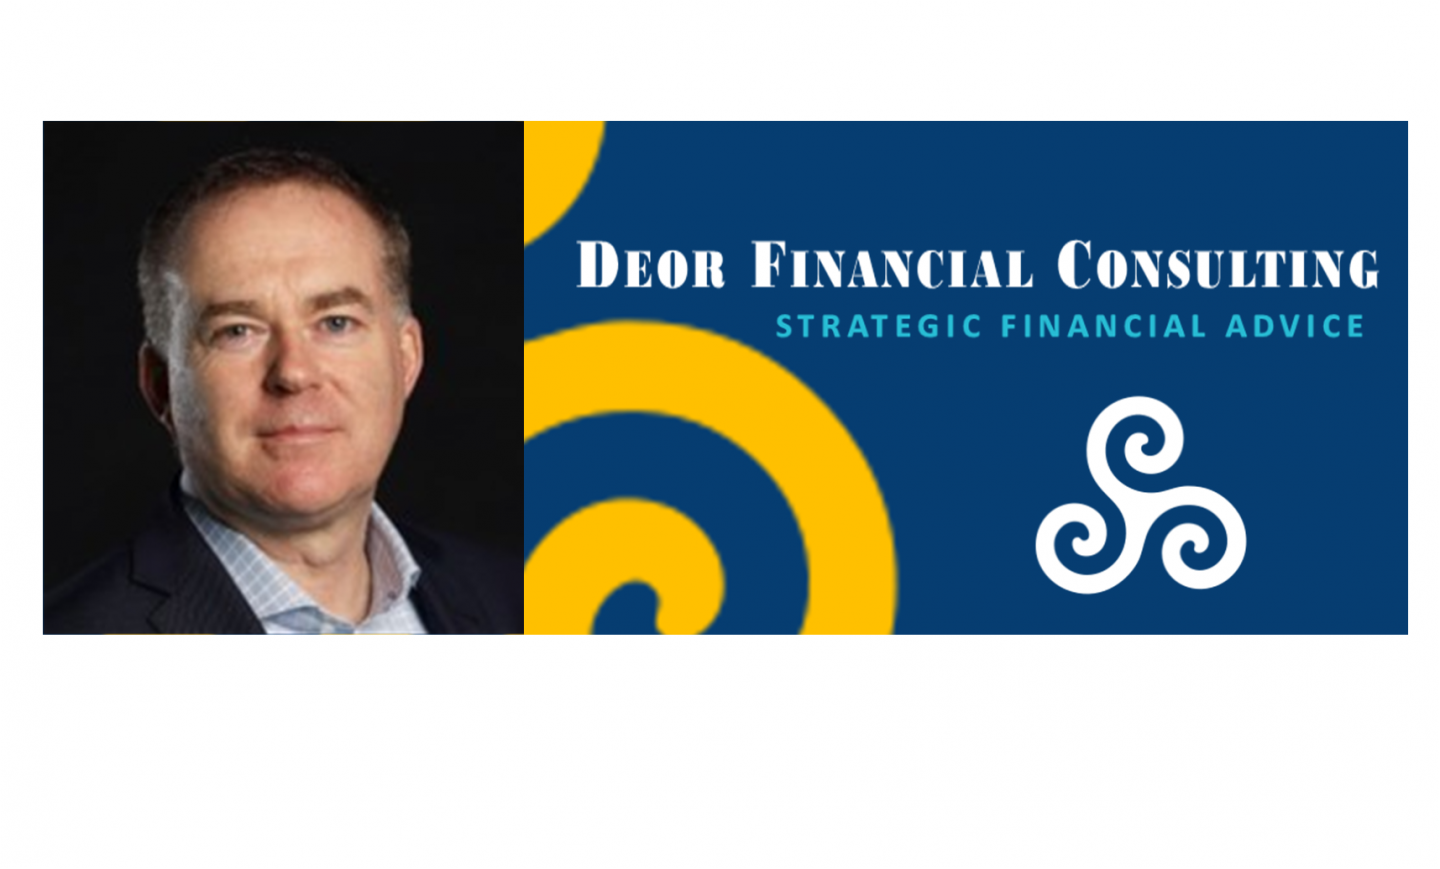 Straight Talking - Deor Financial Consulting - Helping Companies Become 'Investor Ready'